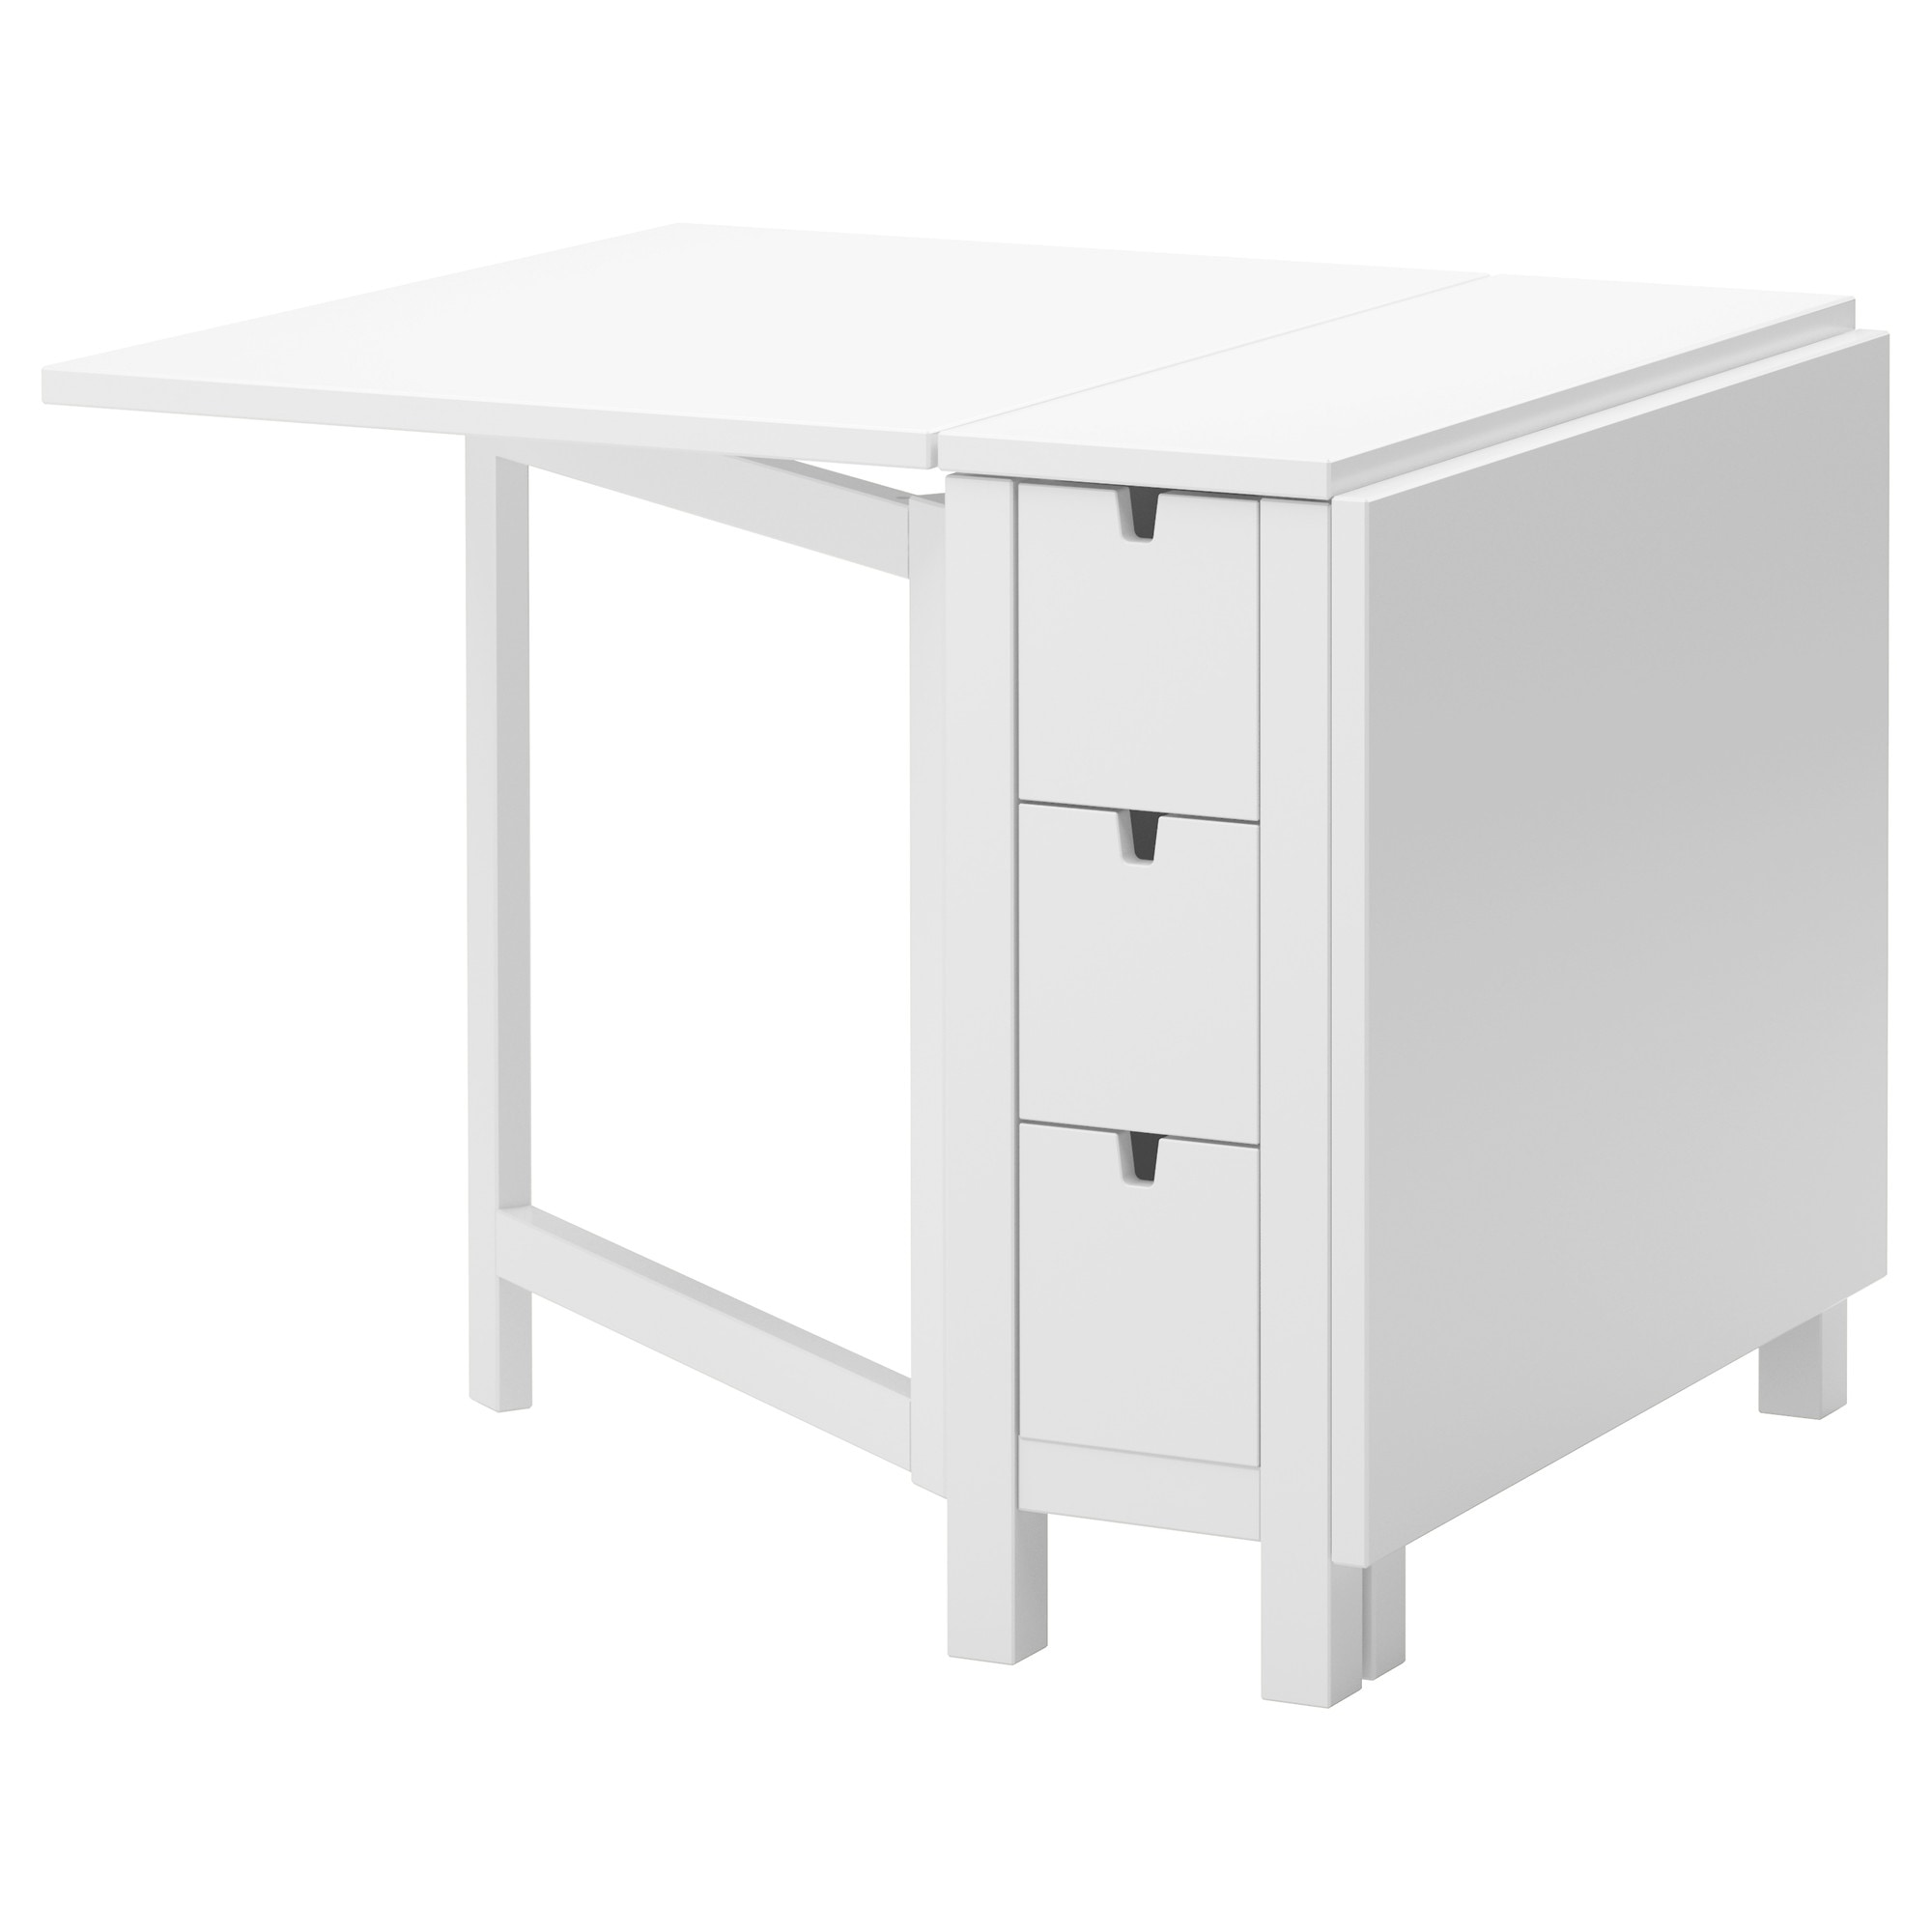 Ikea Folding Dining Table norden gateleg table - ikea